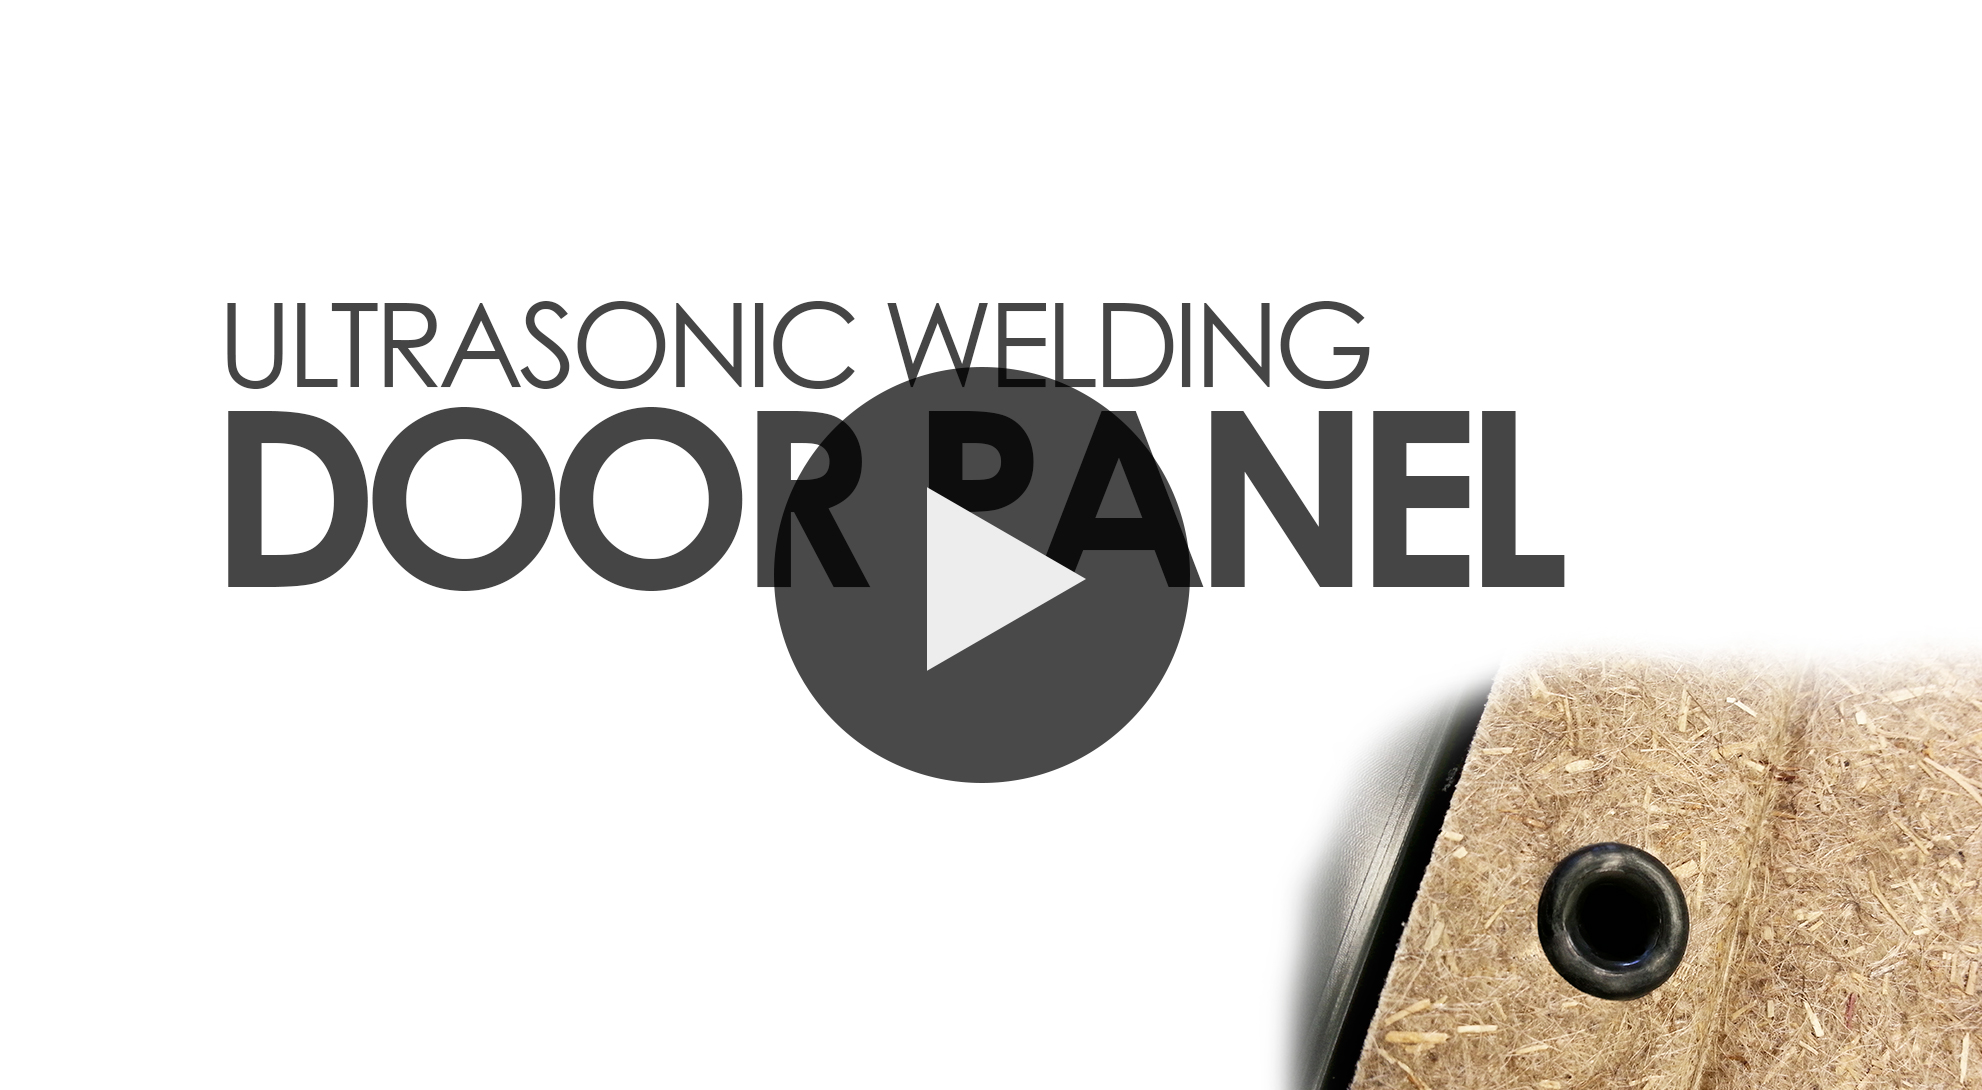 Door Panel - Ultrasonic Welding Demonstration